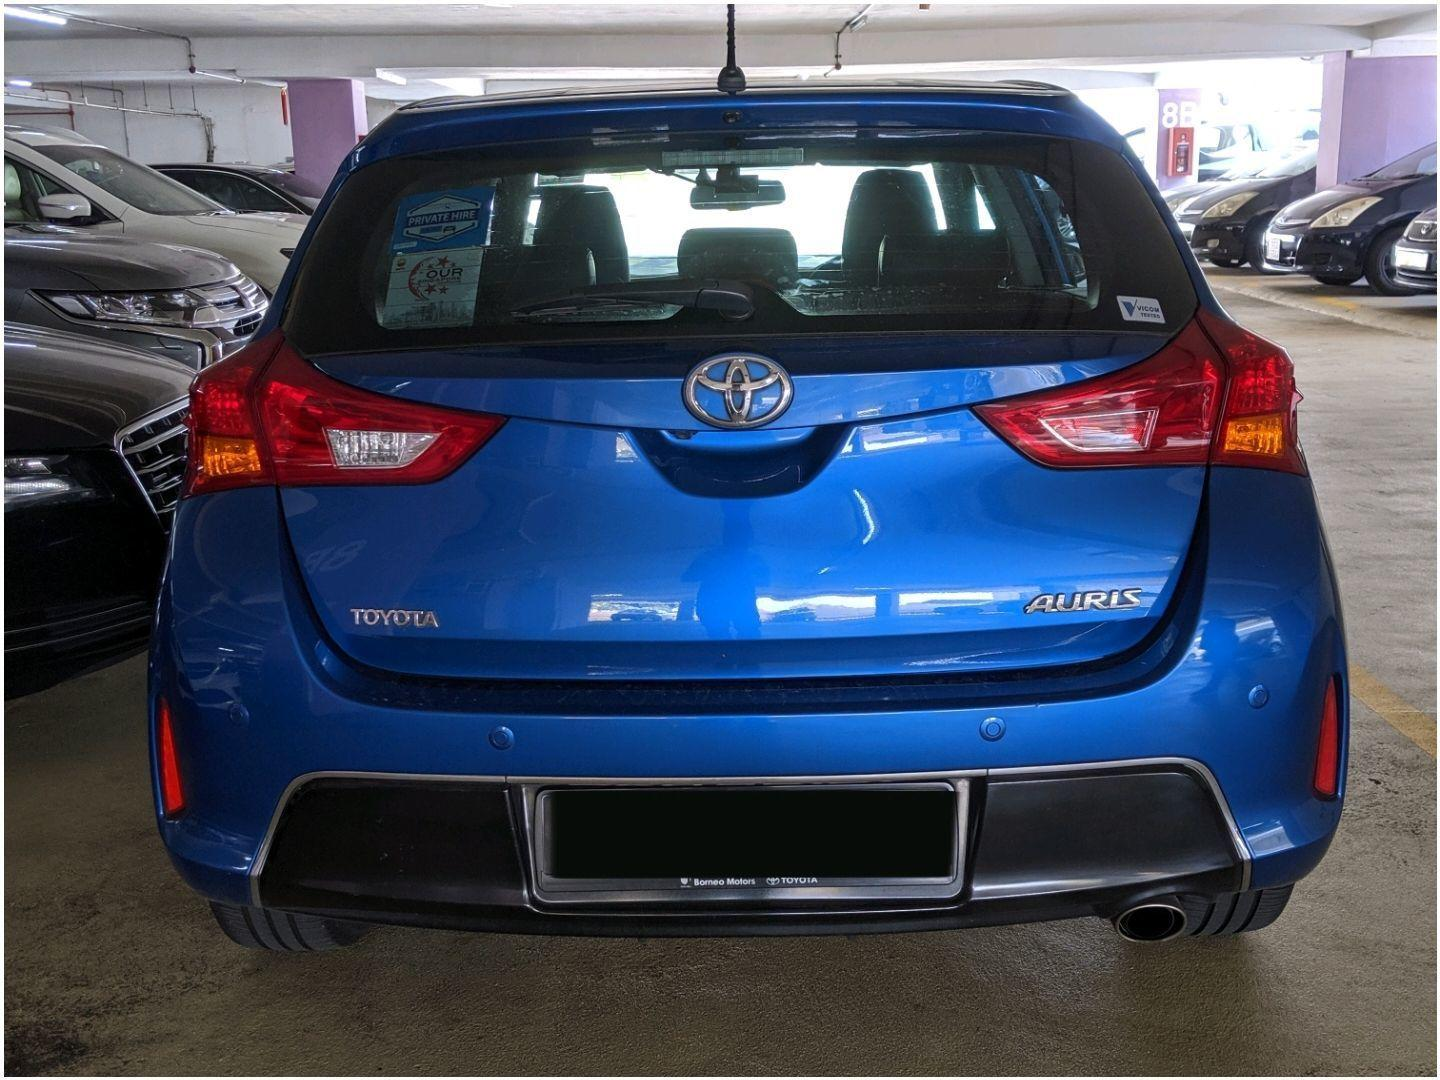 Toyota Auris (PHV & Personal Usage) (Rent / Rental / Lease)